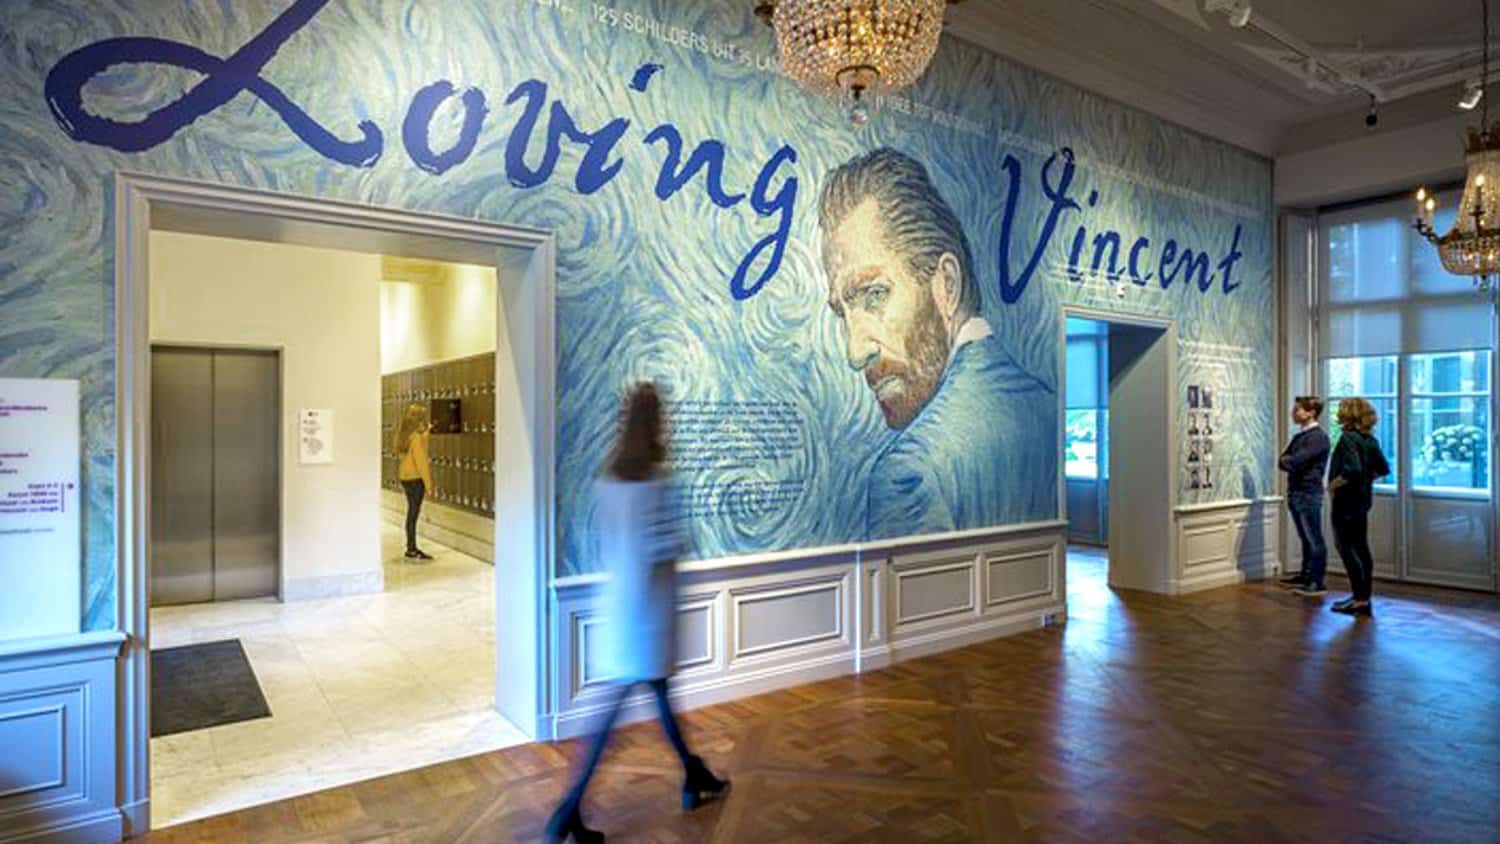 Loving Vincent Exhibit at Het Noordbrabants Museum